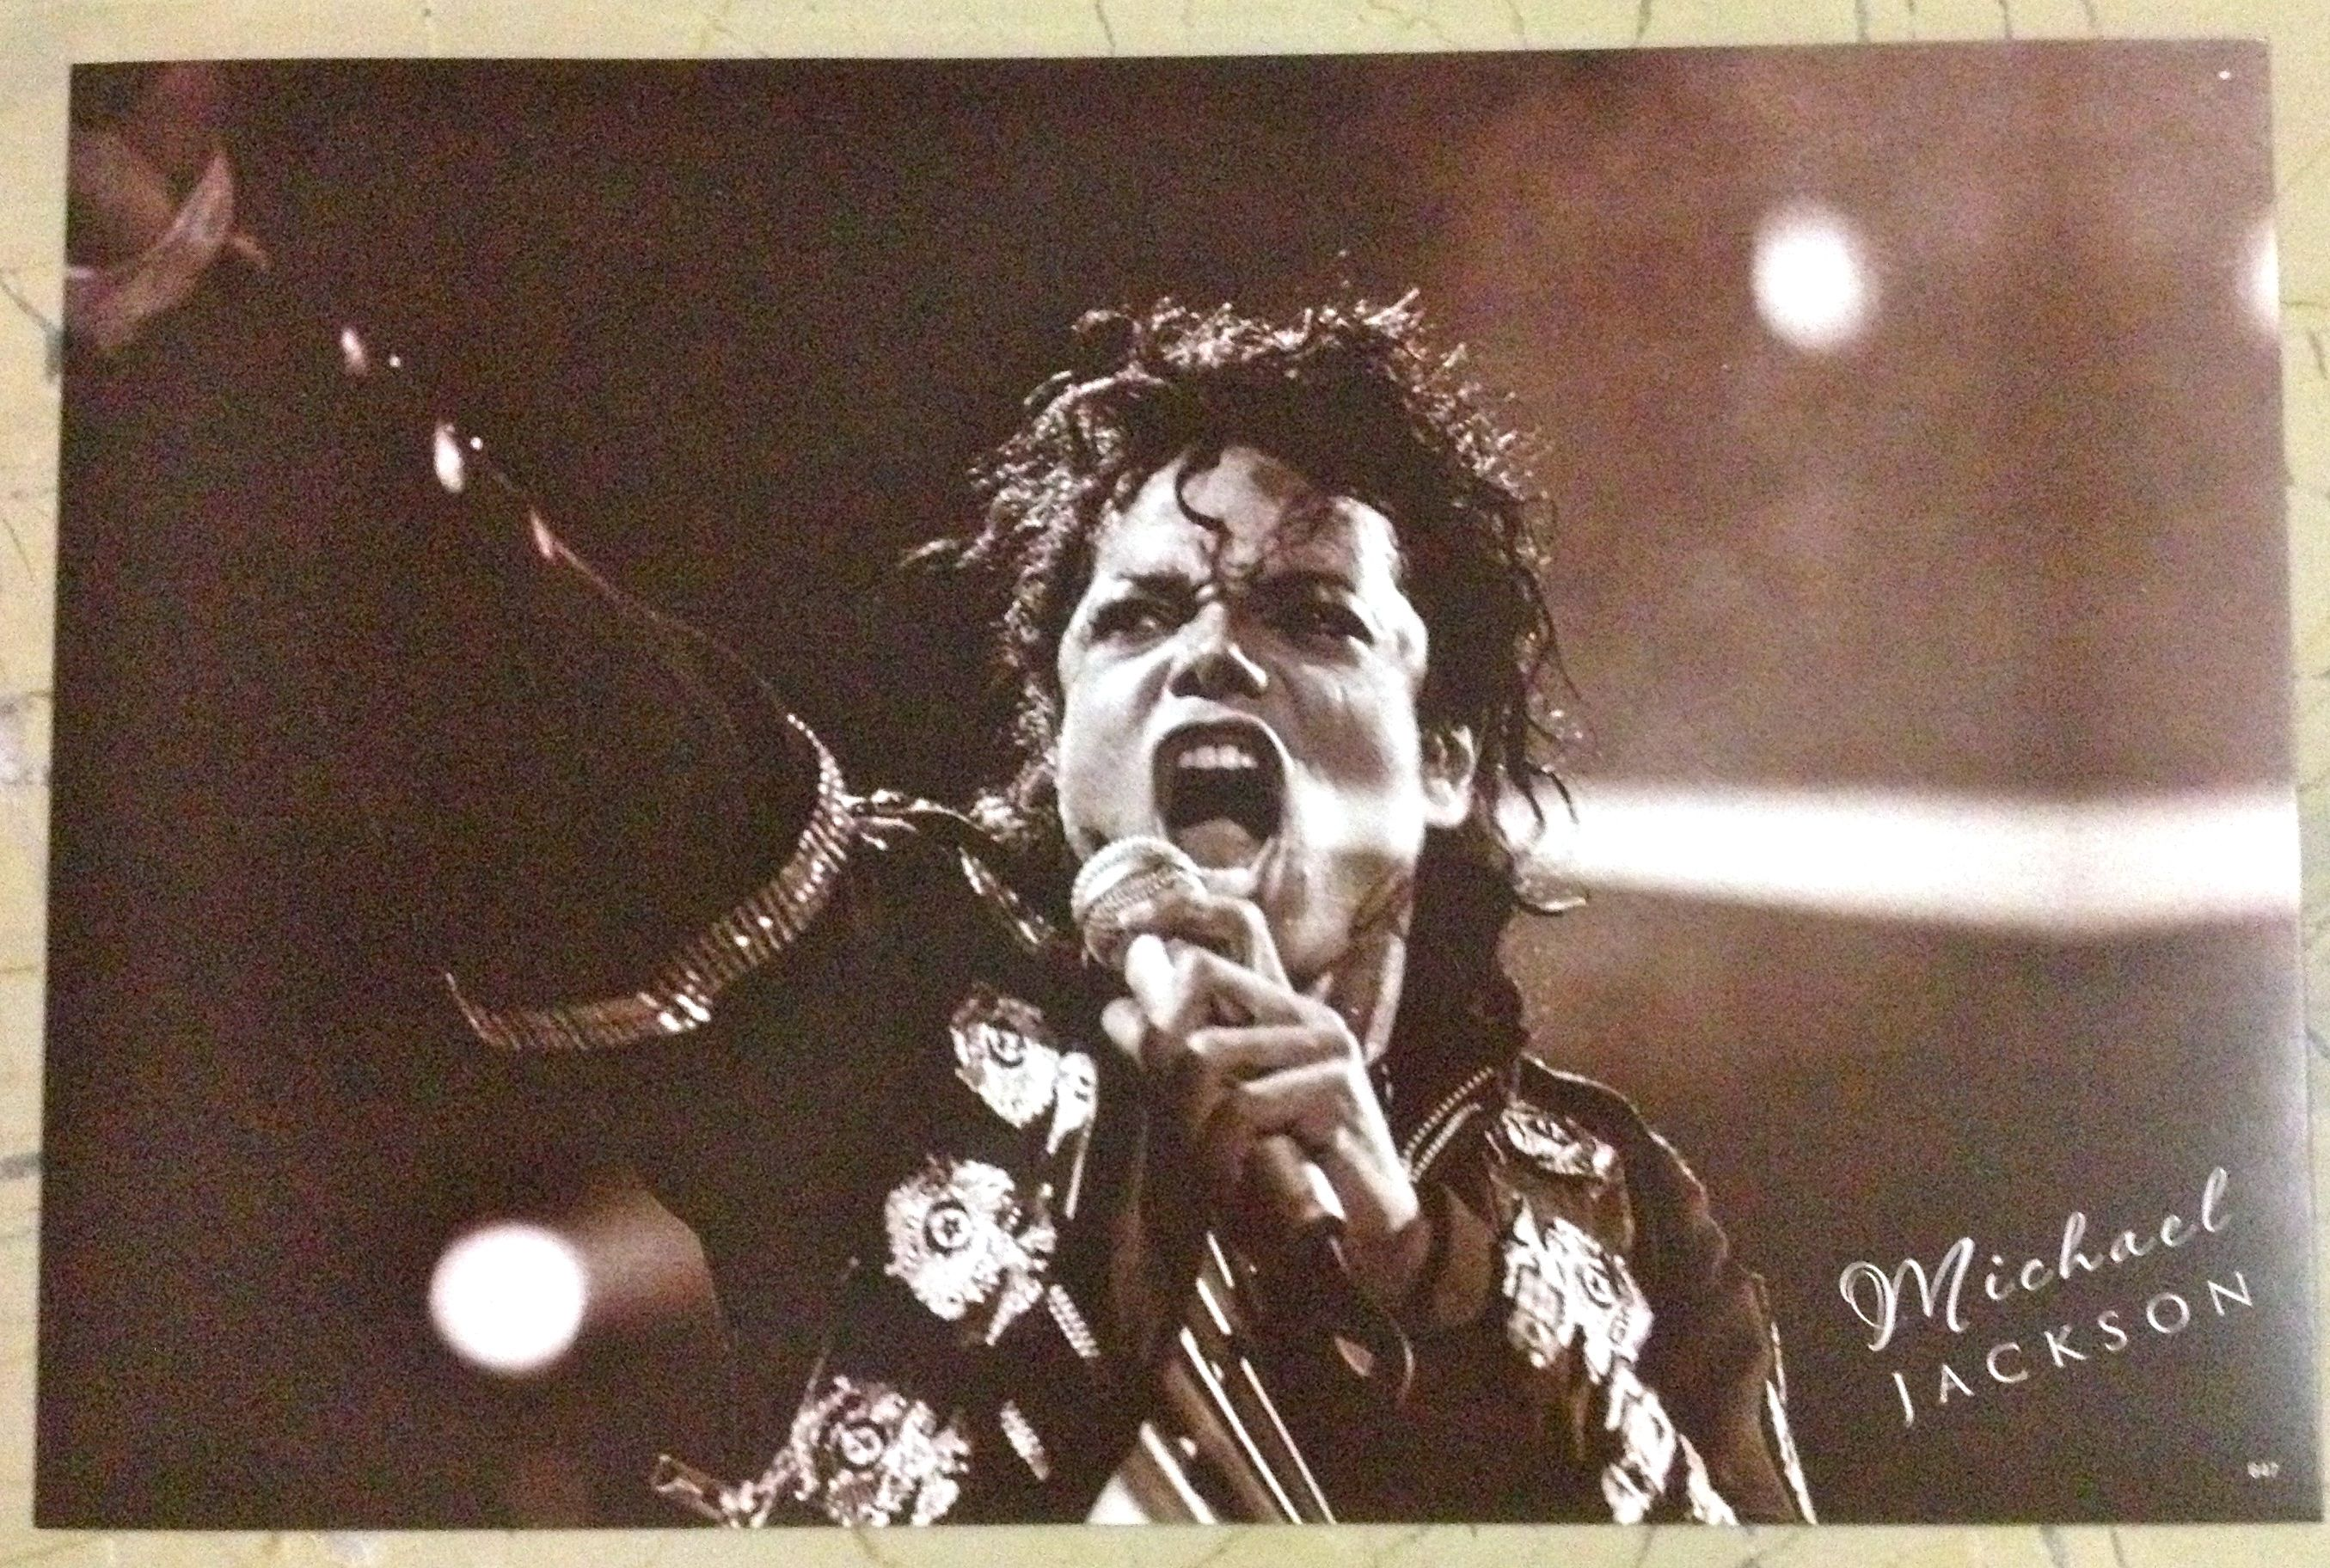 MJ Poster (200 INR)  For Buying visit our website or drop us a message on Facebook.